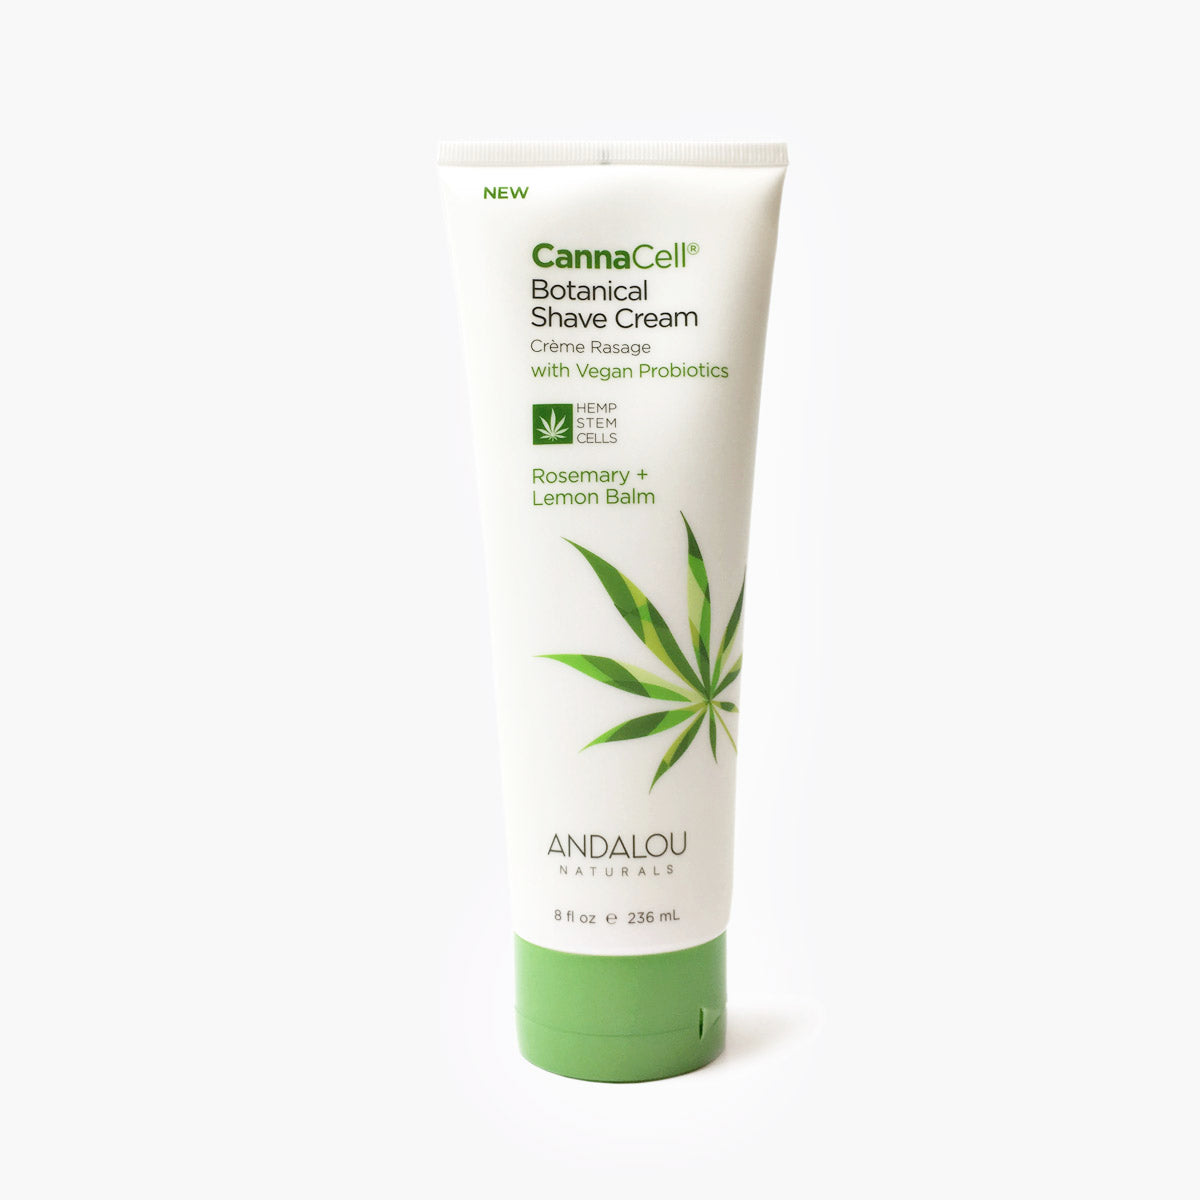 CannaCell Botanical Shave Cream - Rosemary + Lemon Balm - Andalou Naturals US